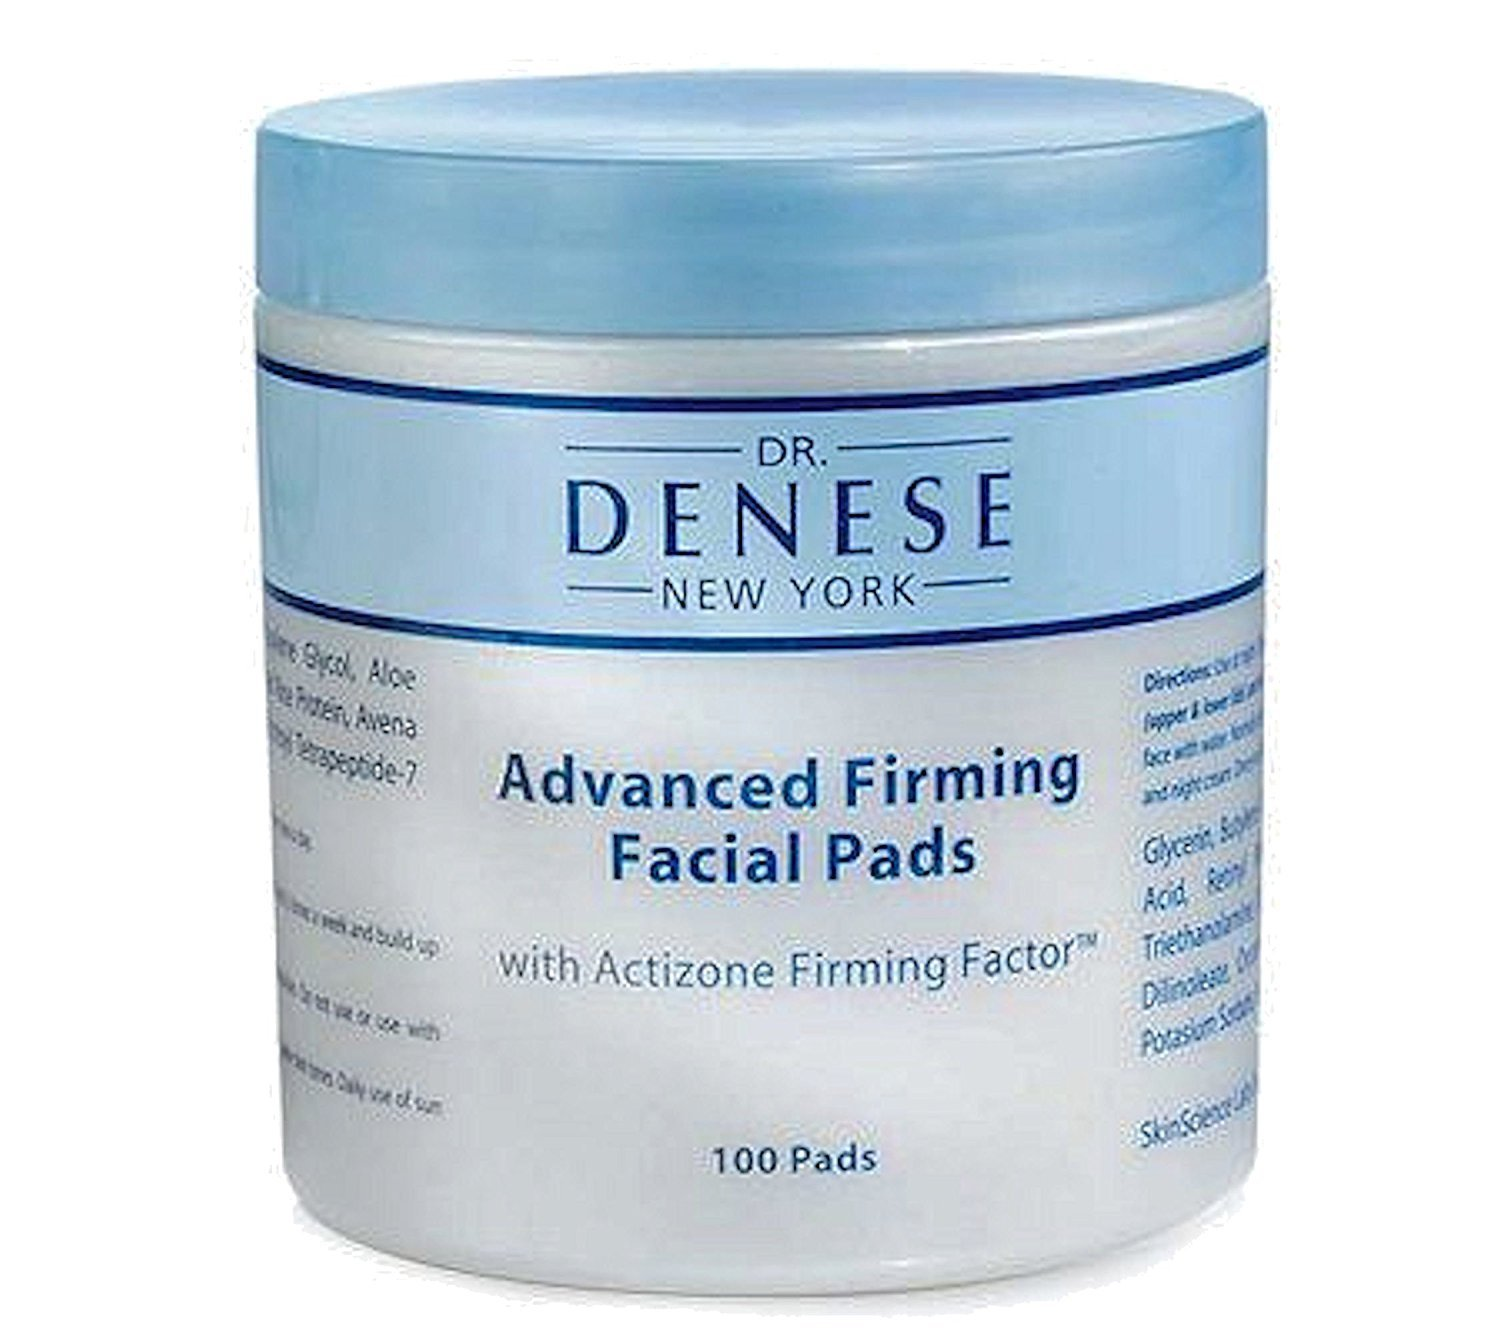 Dr. Denese Advanced Firming Facial Pads 100 Count AB-73721